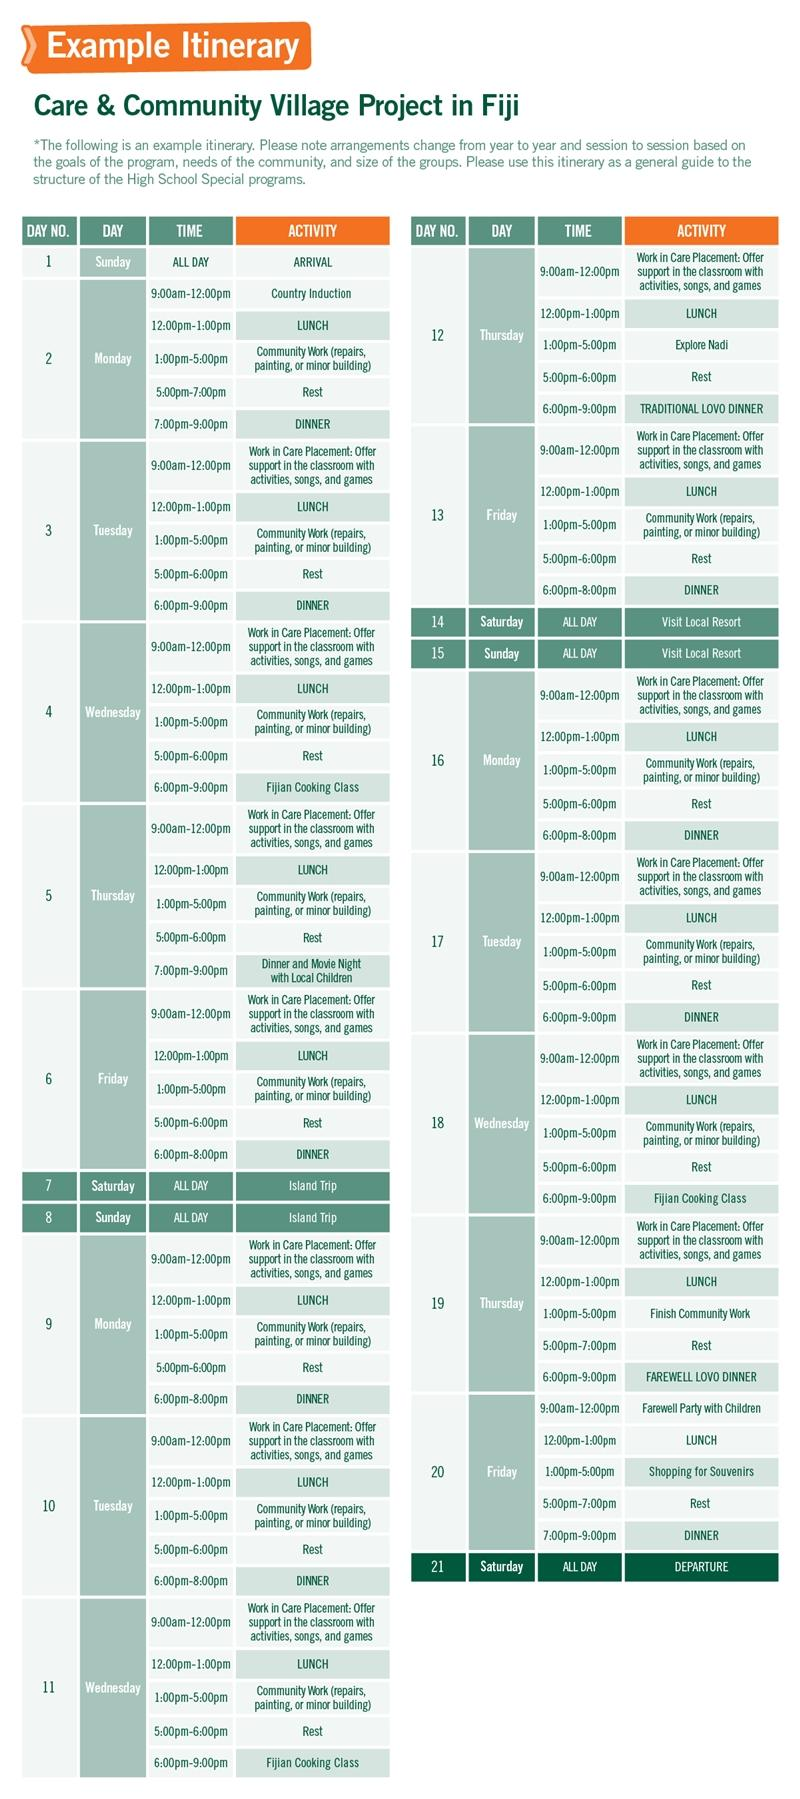 High School Special sample schedule for Care & Community Village Project in Fiji